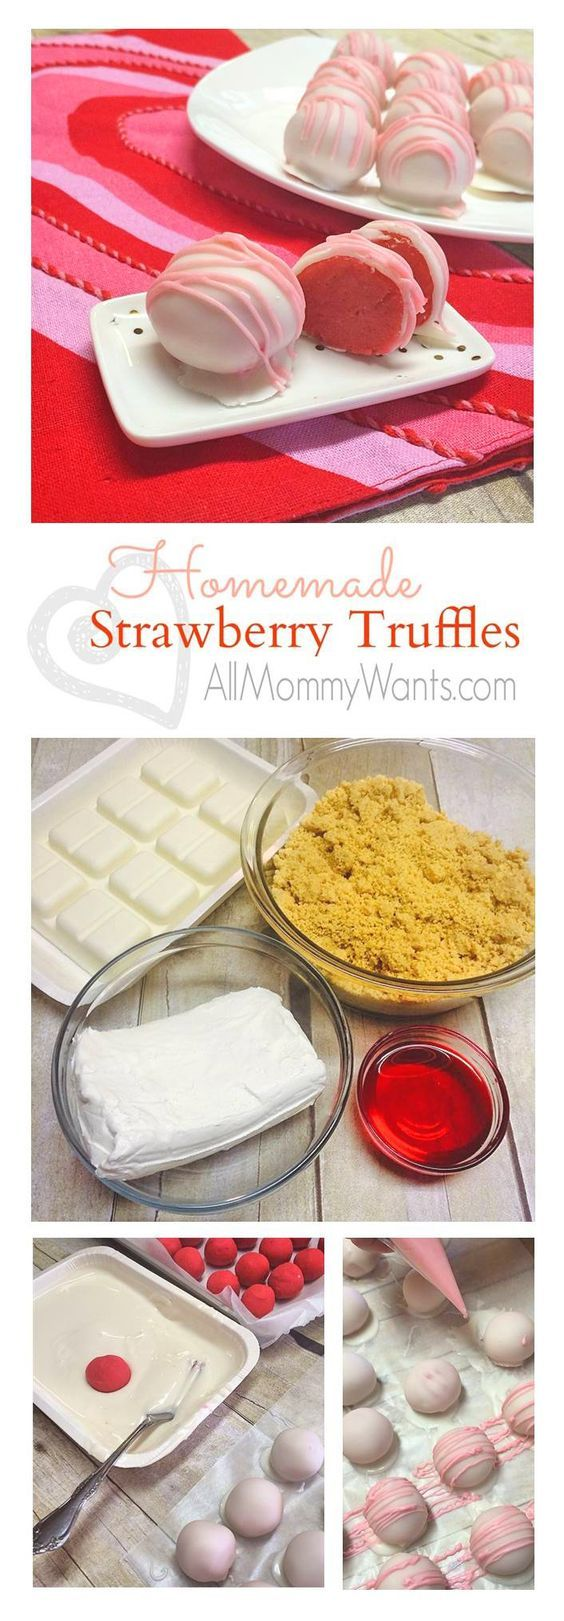 Homemade Strawberry Truffles - These are amazing and so easy to make for Valentine's Day!